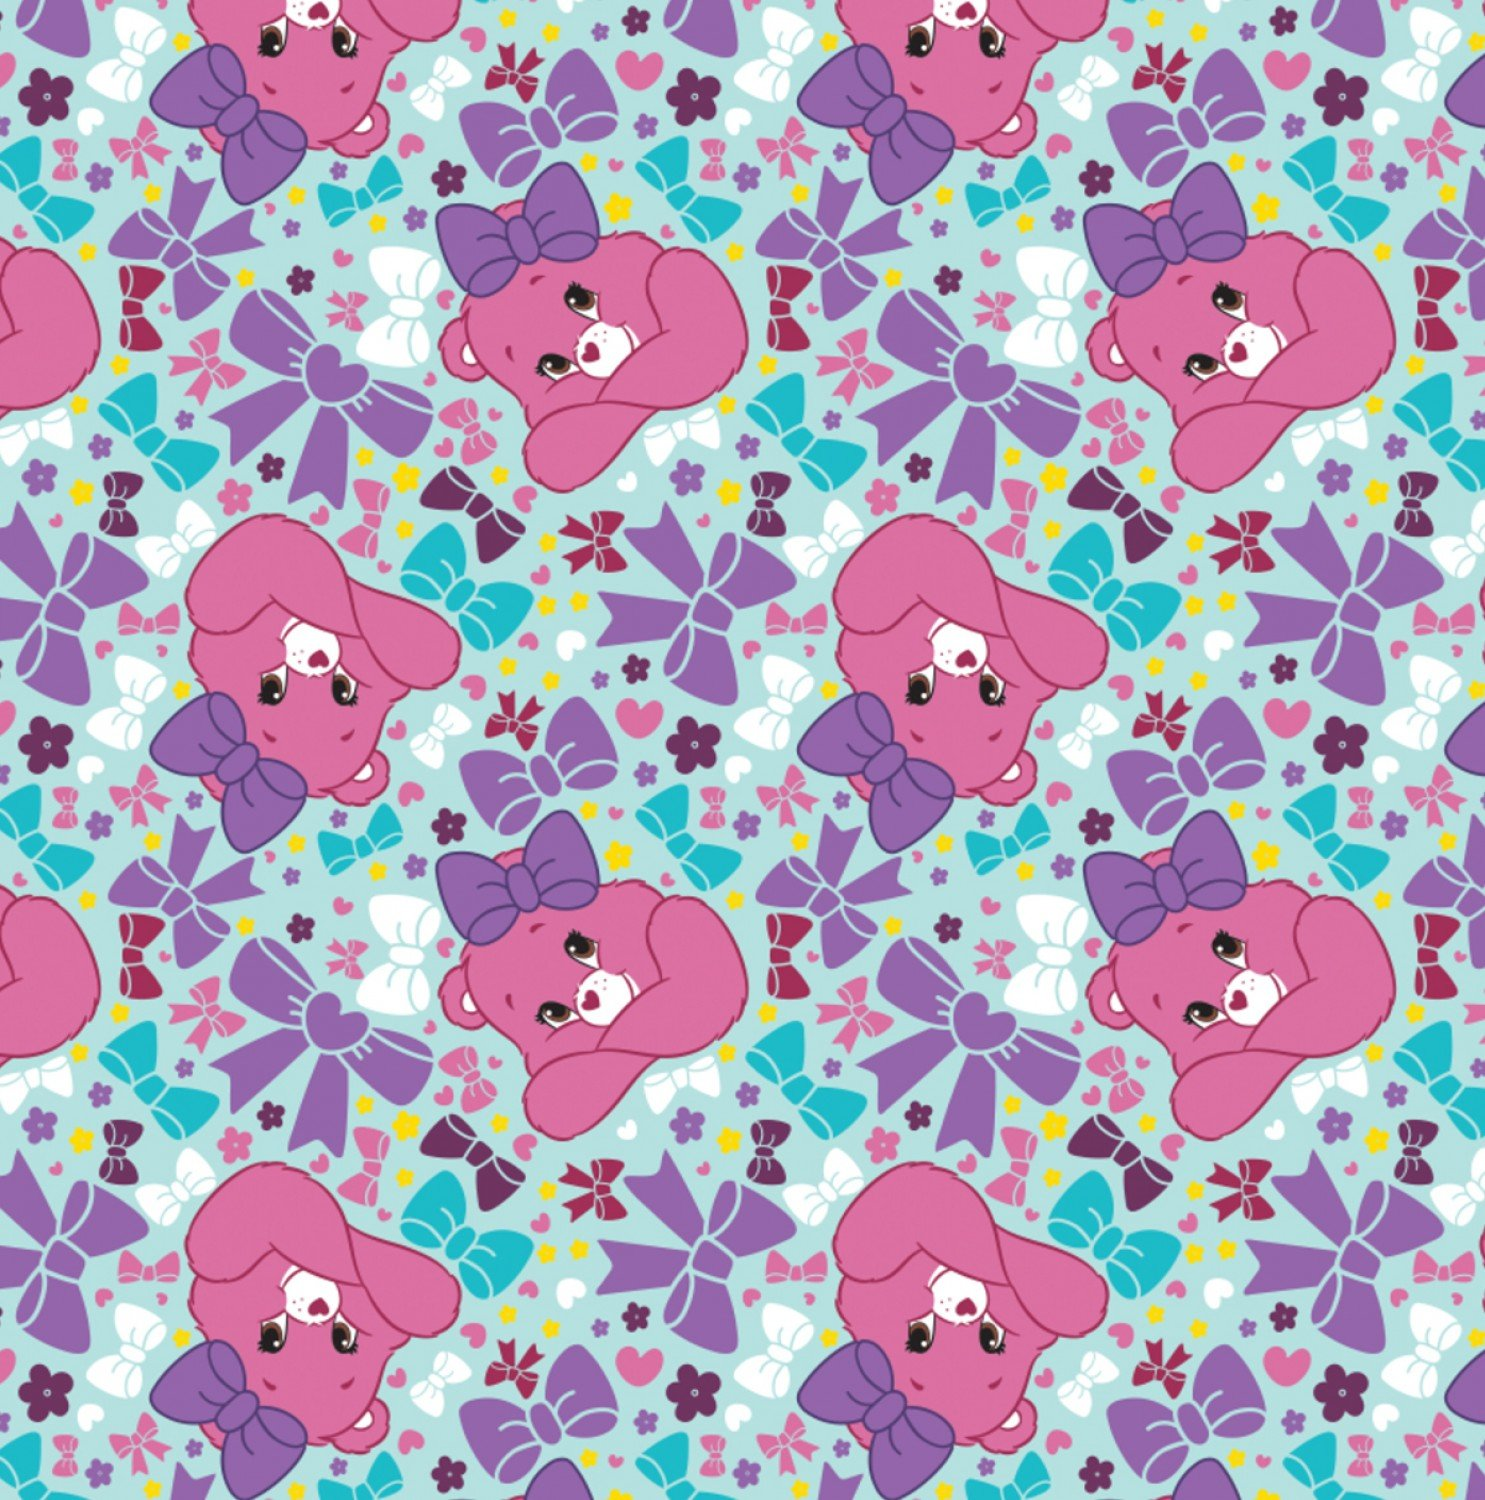 Camelot Cottons Girl Power II 23400407 2 Ruby Comics Cotton Fabric